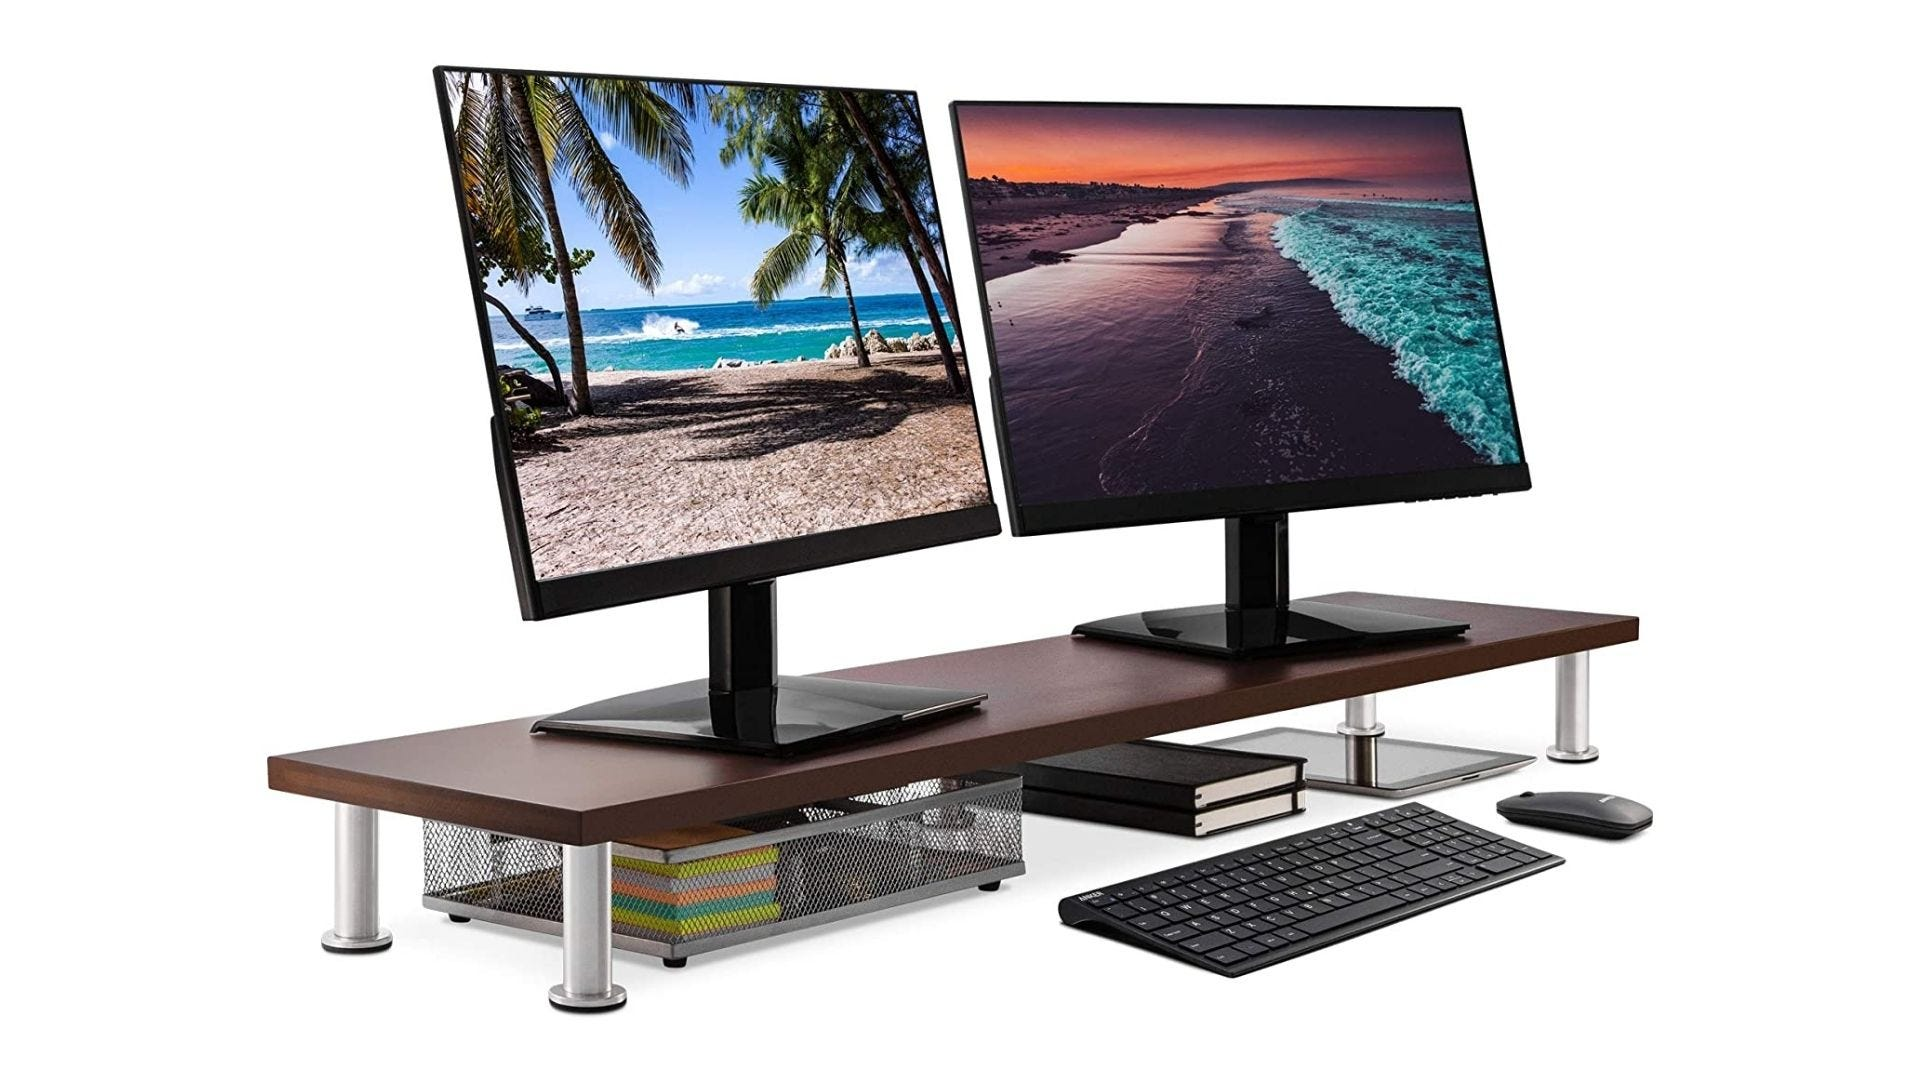 The Office Oasis Large Dual Monitor Stand for Computer Screens